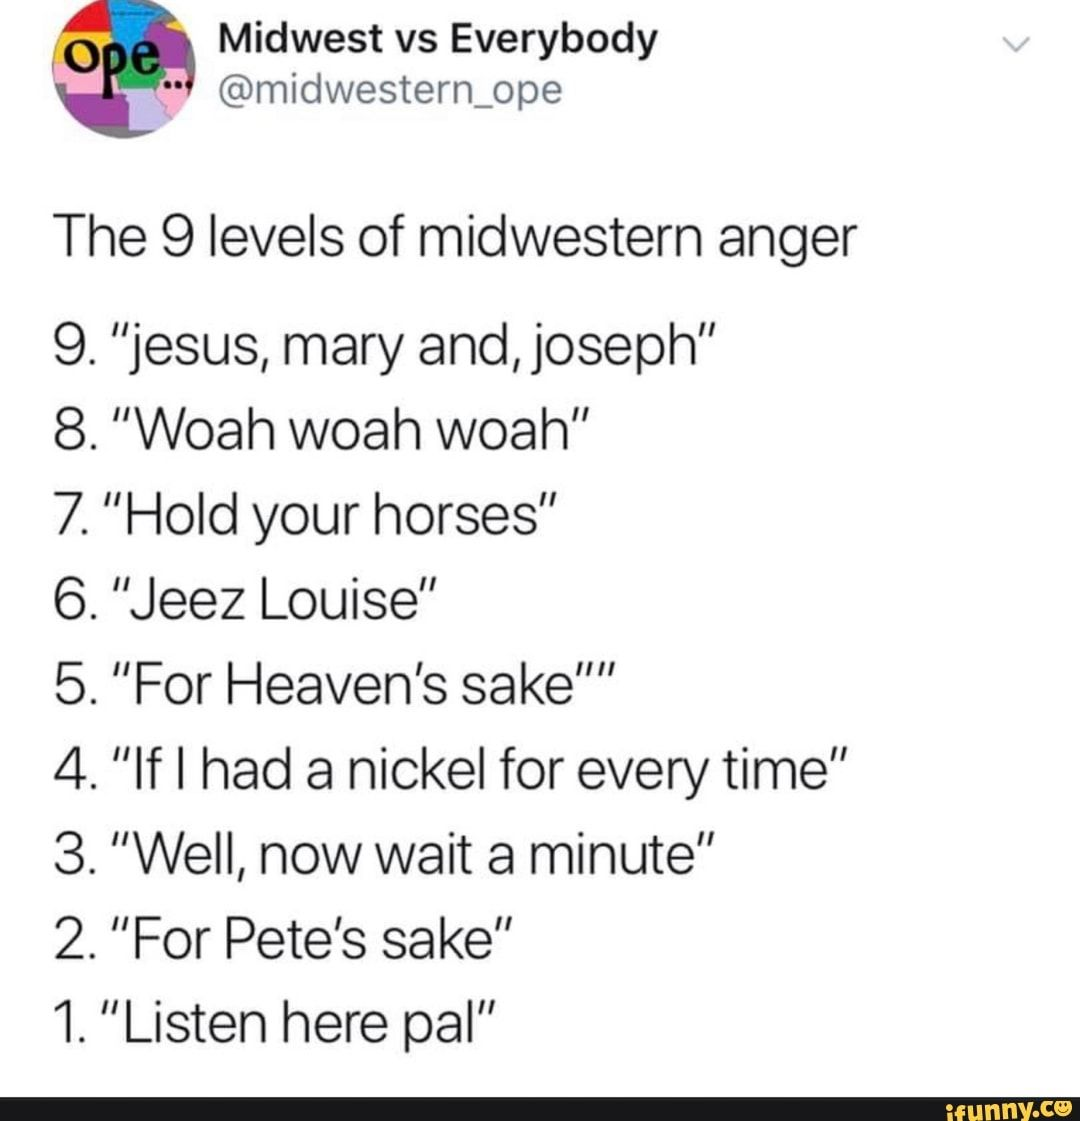 0 Midwest Vs Everybody Midwestem Ope The 9 Levels Of Midwestern